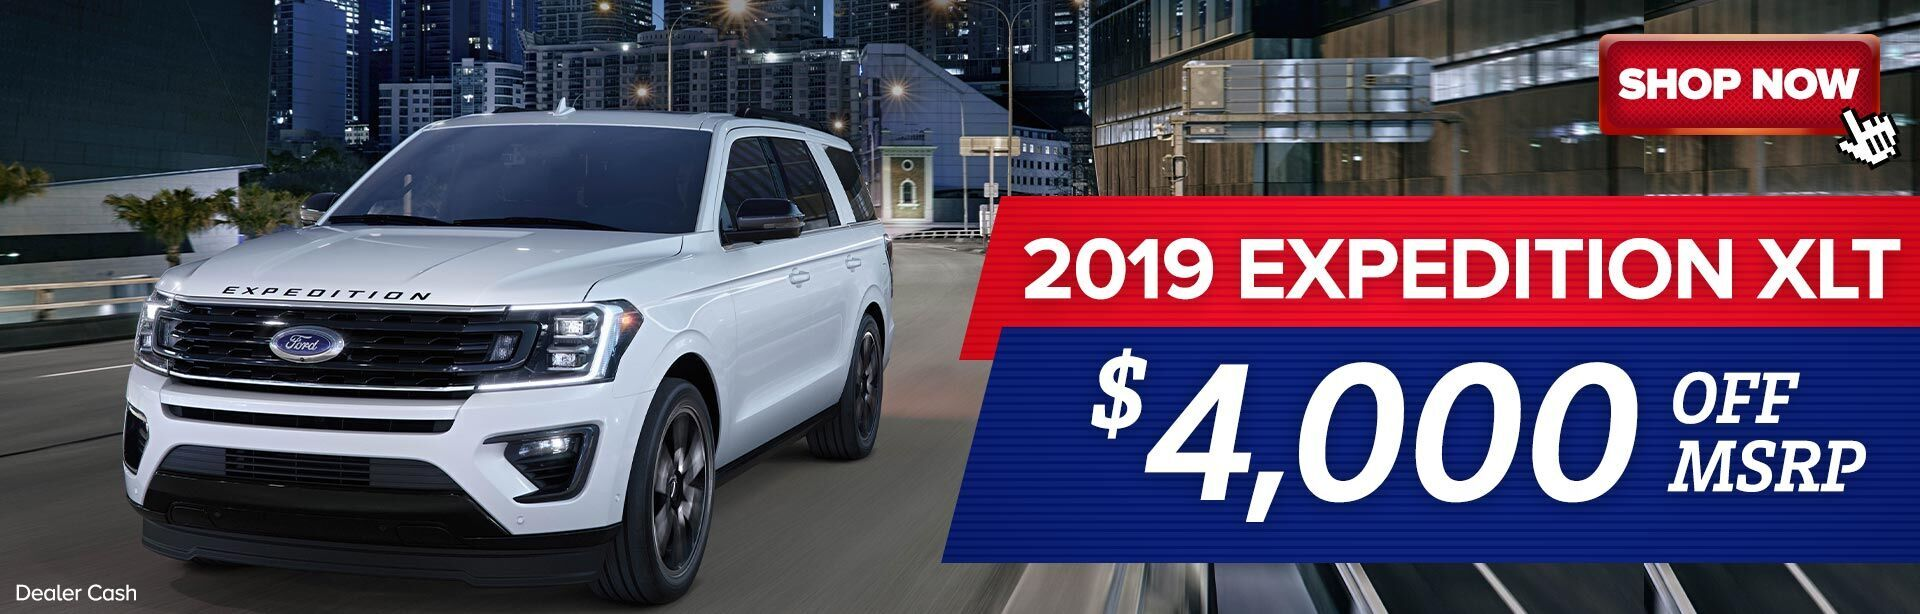 2019 Expedition XLT